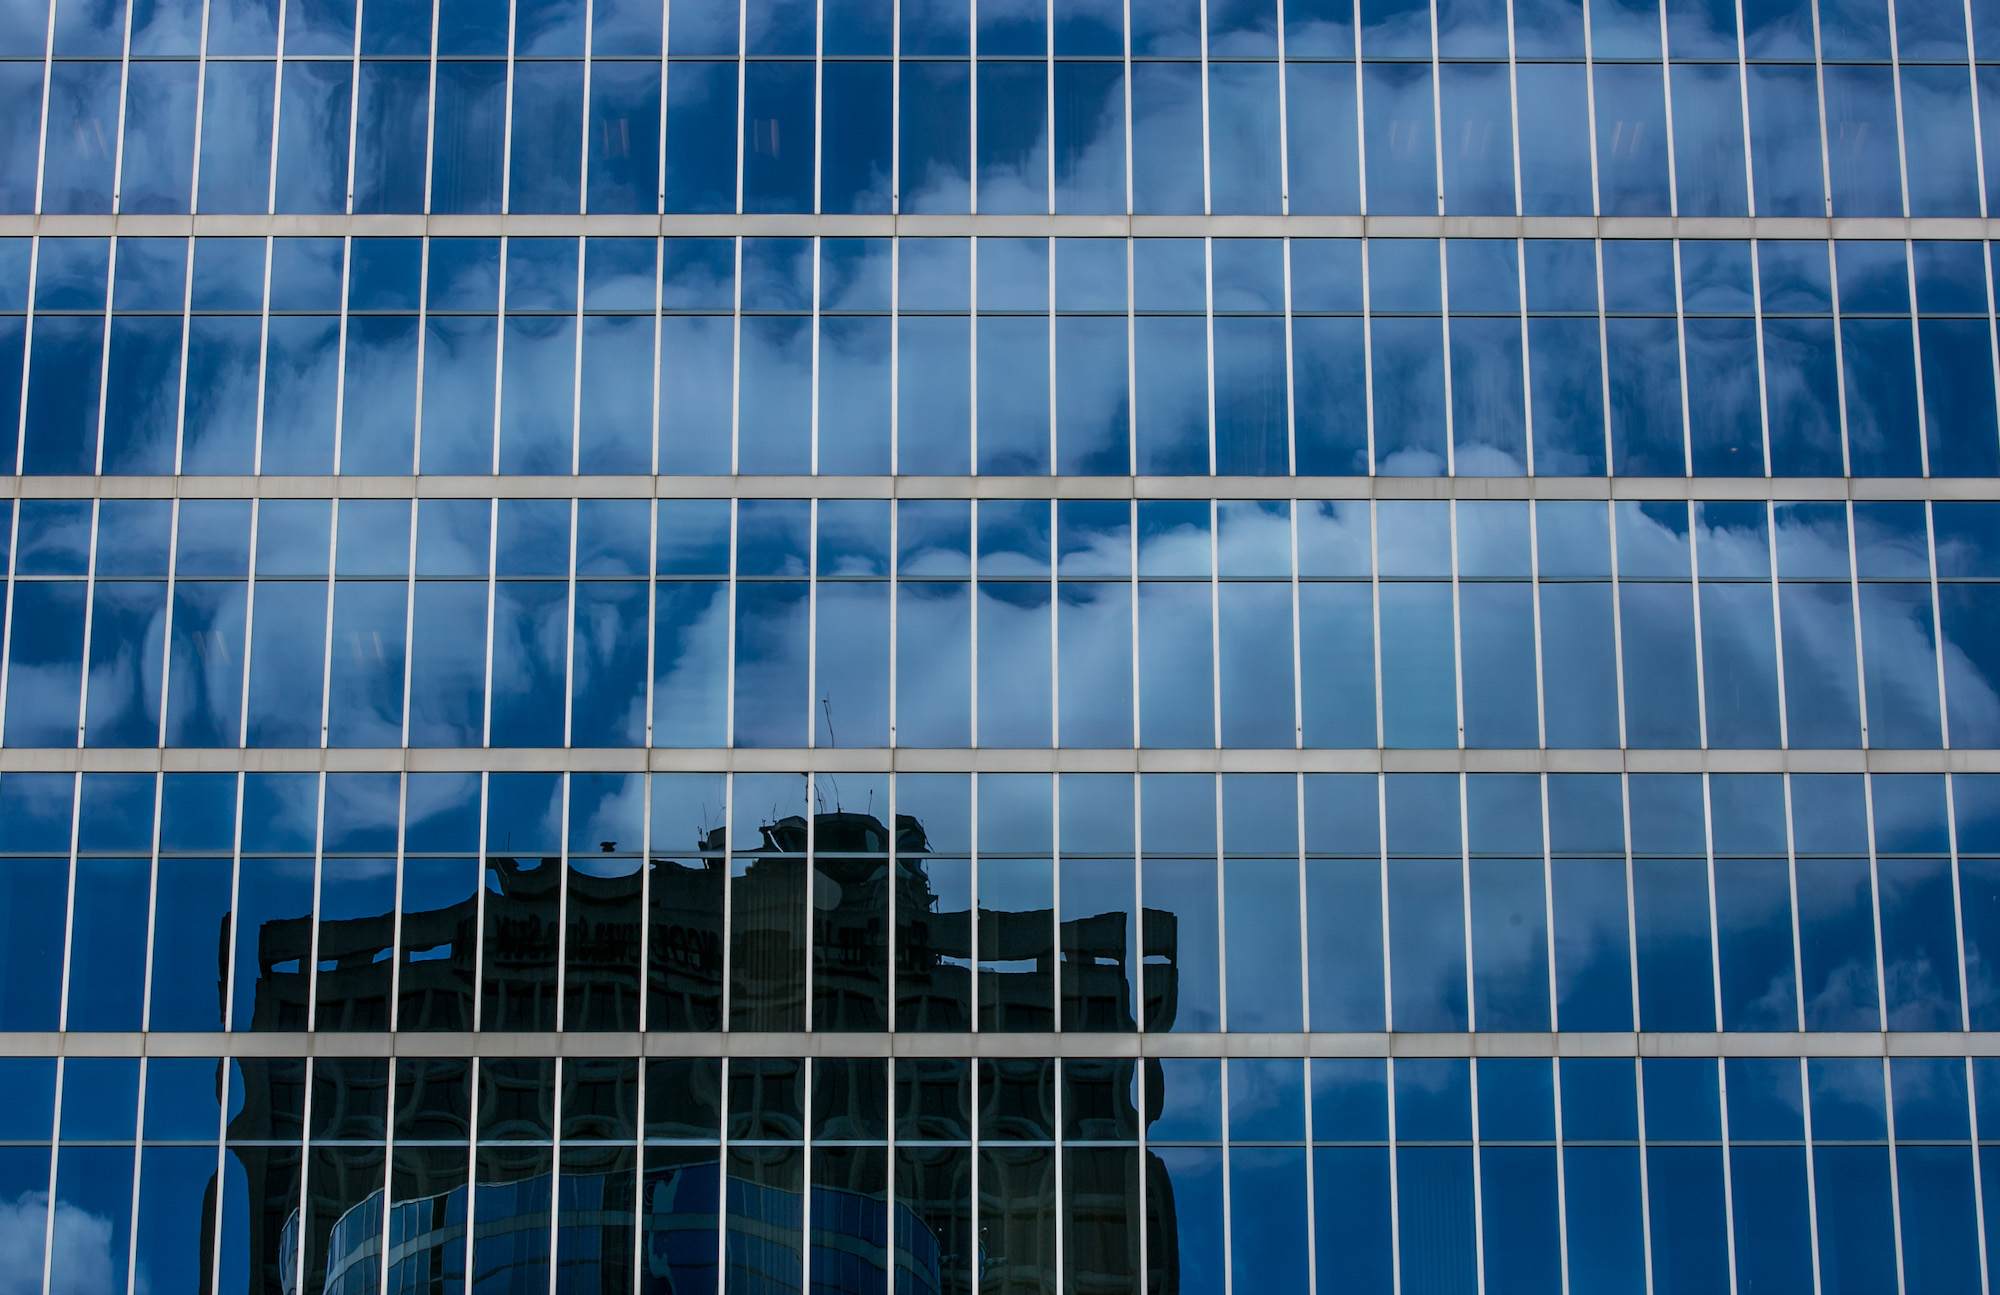 a blue glass building facade reflecting clouds, sky, and a nearby building